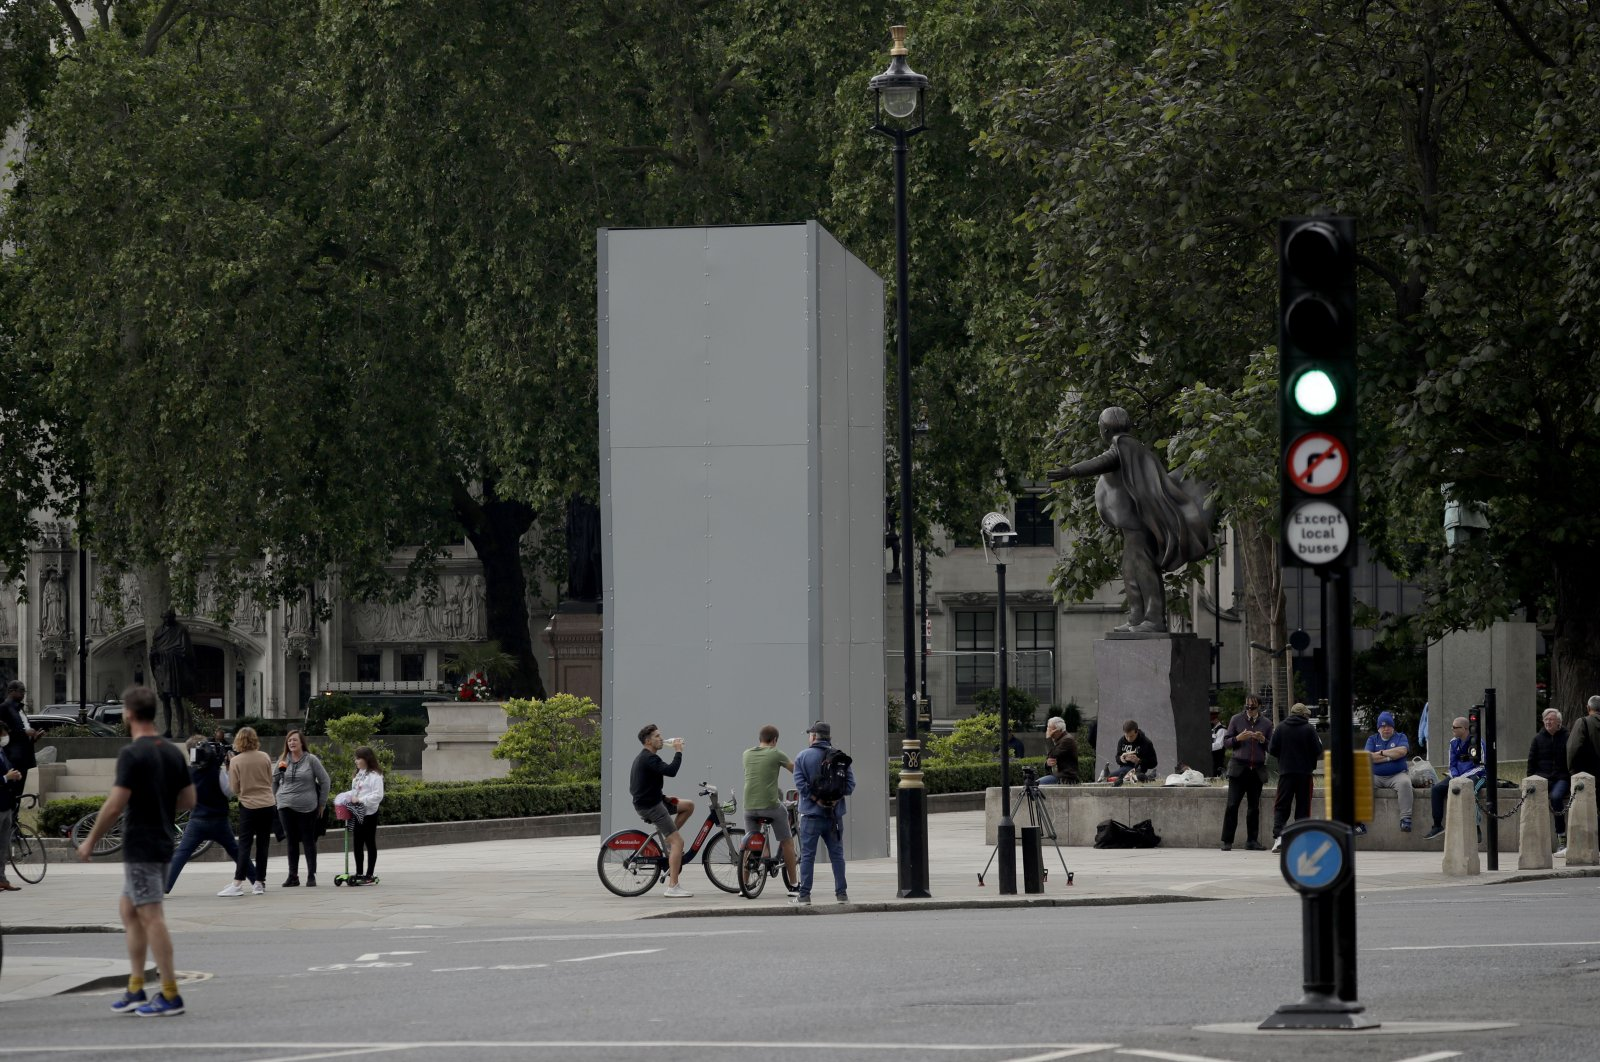 A protective screen put up late Thursday encloses the statue of Britain's World War II Prime Minister Winston Churchill ahead of expected rival demonstrations by anti-racism and far-right protesters in London, June 12, 2020. (AP Photo)